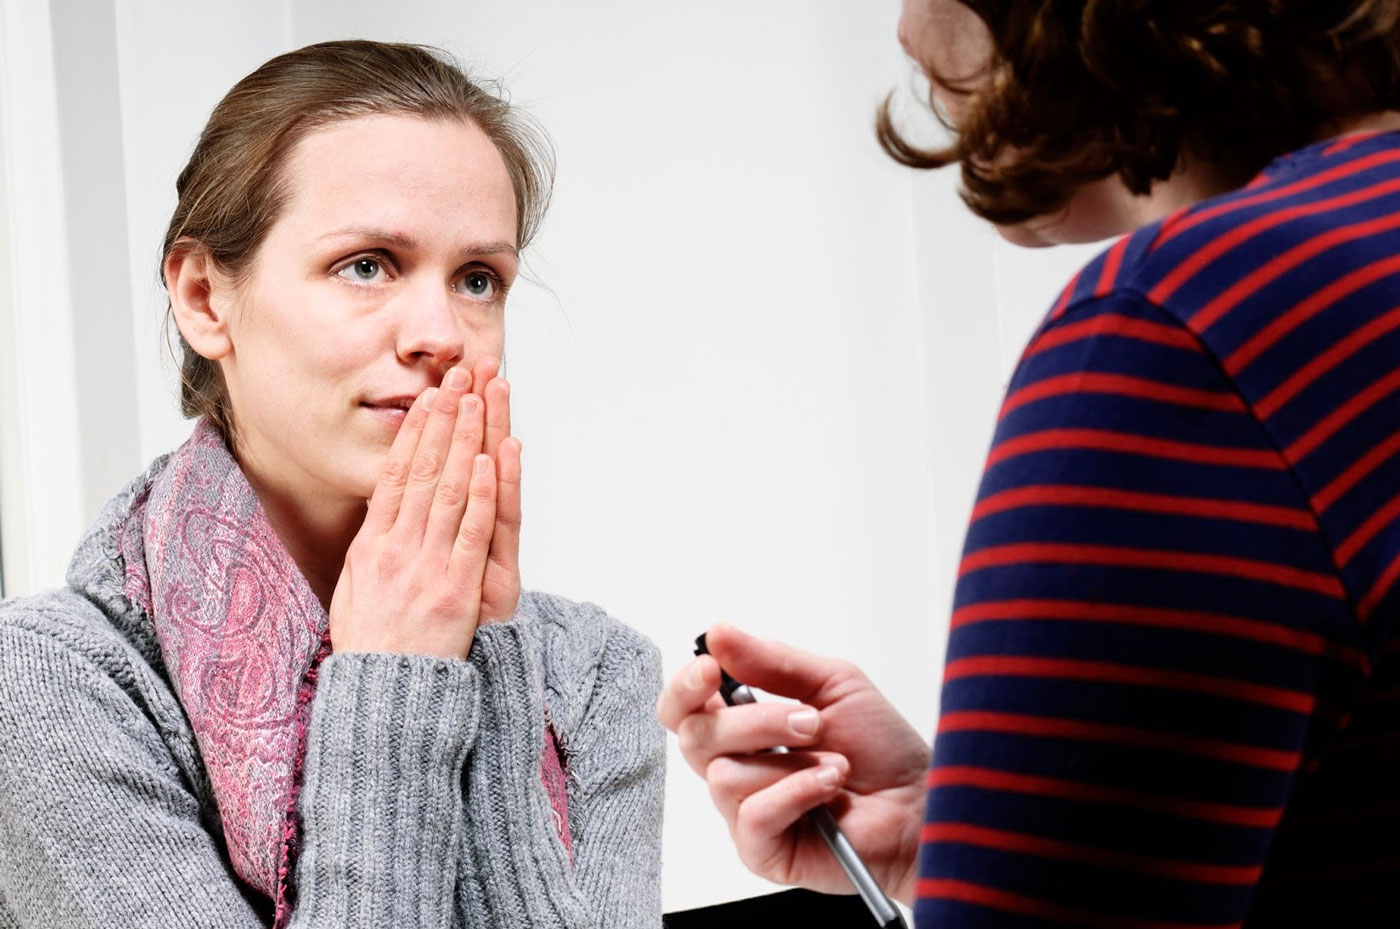 Anger, anxiety, sepression counseling services